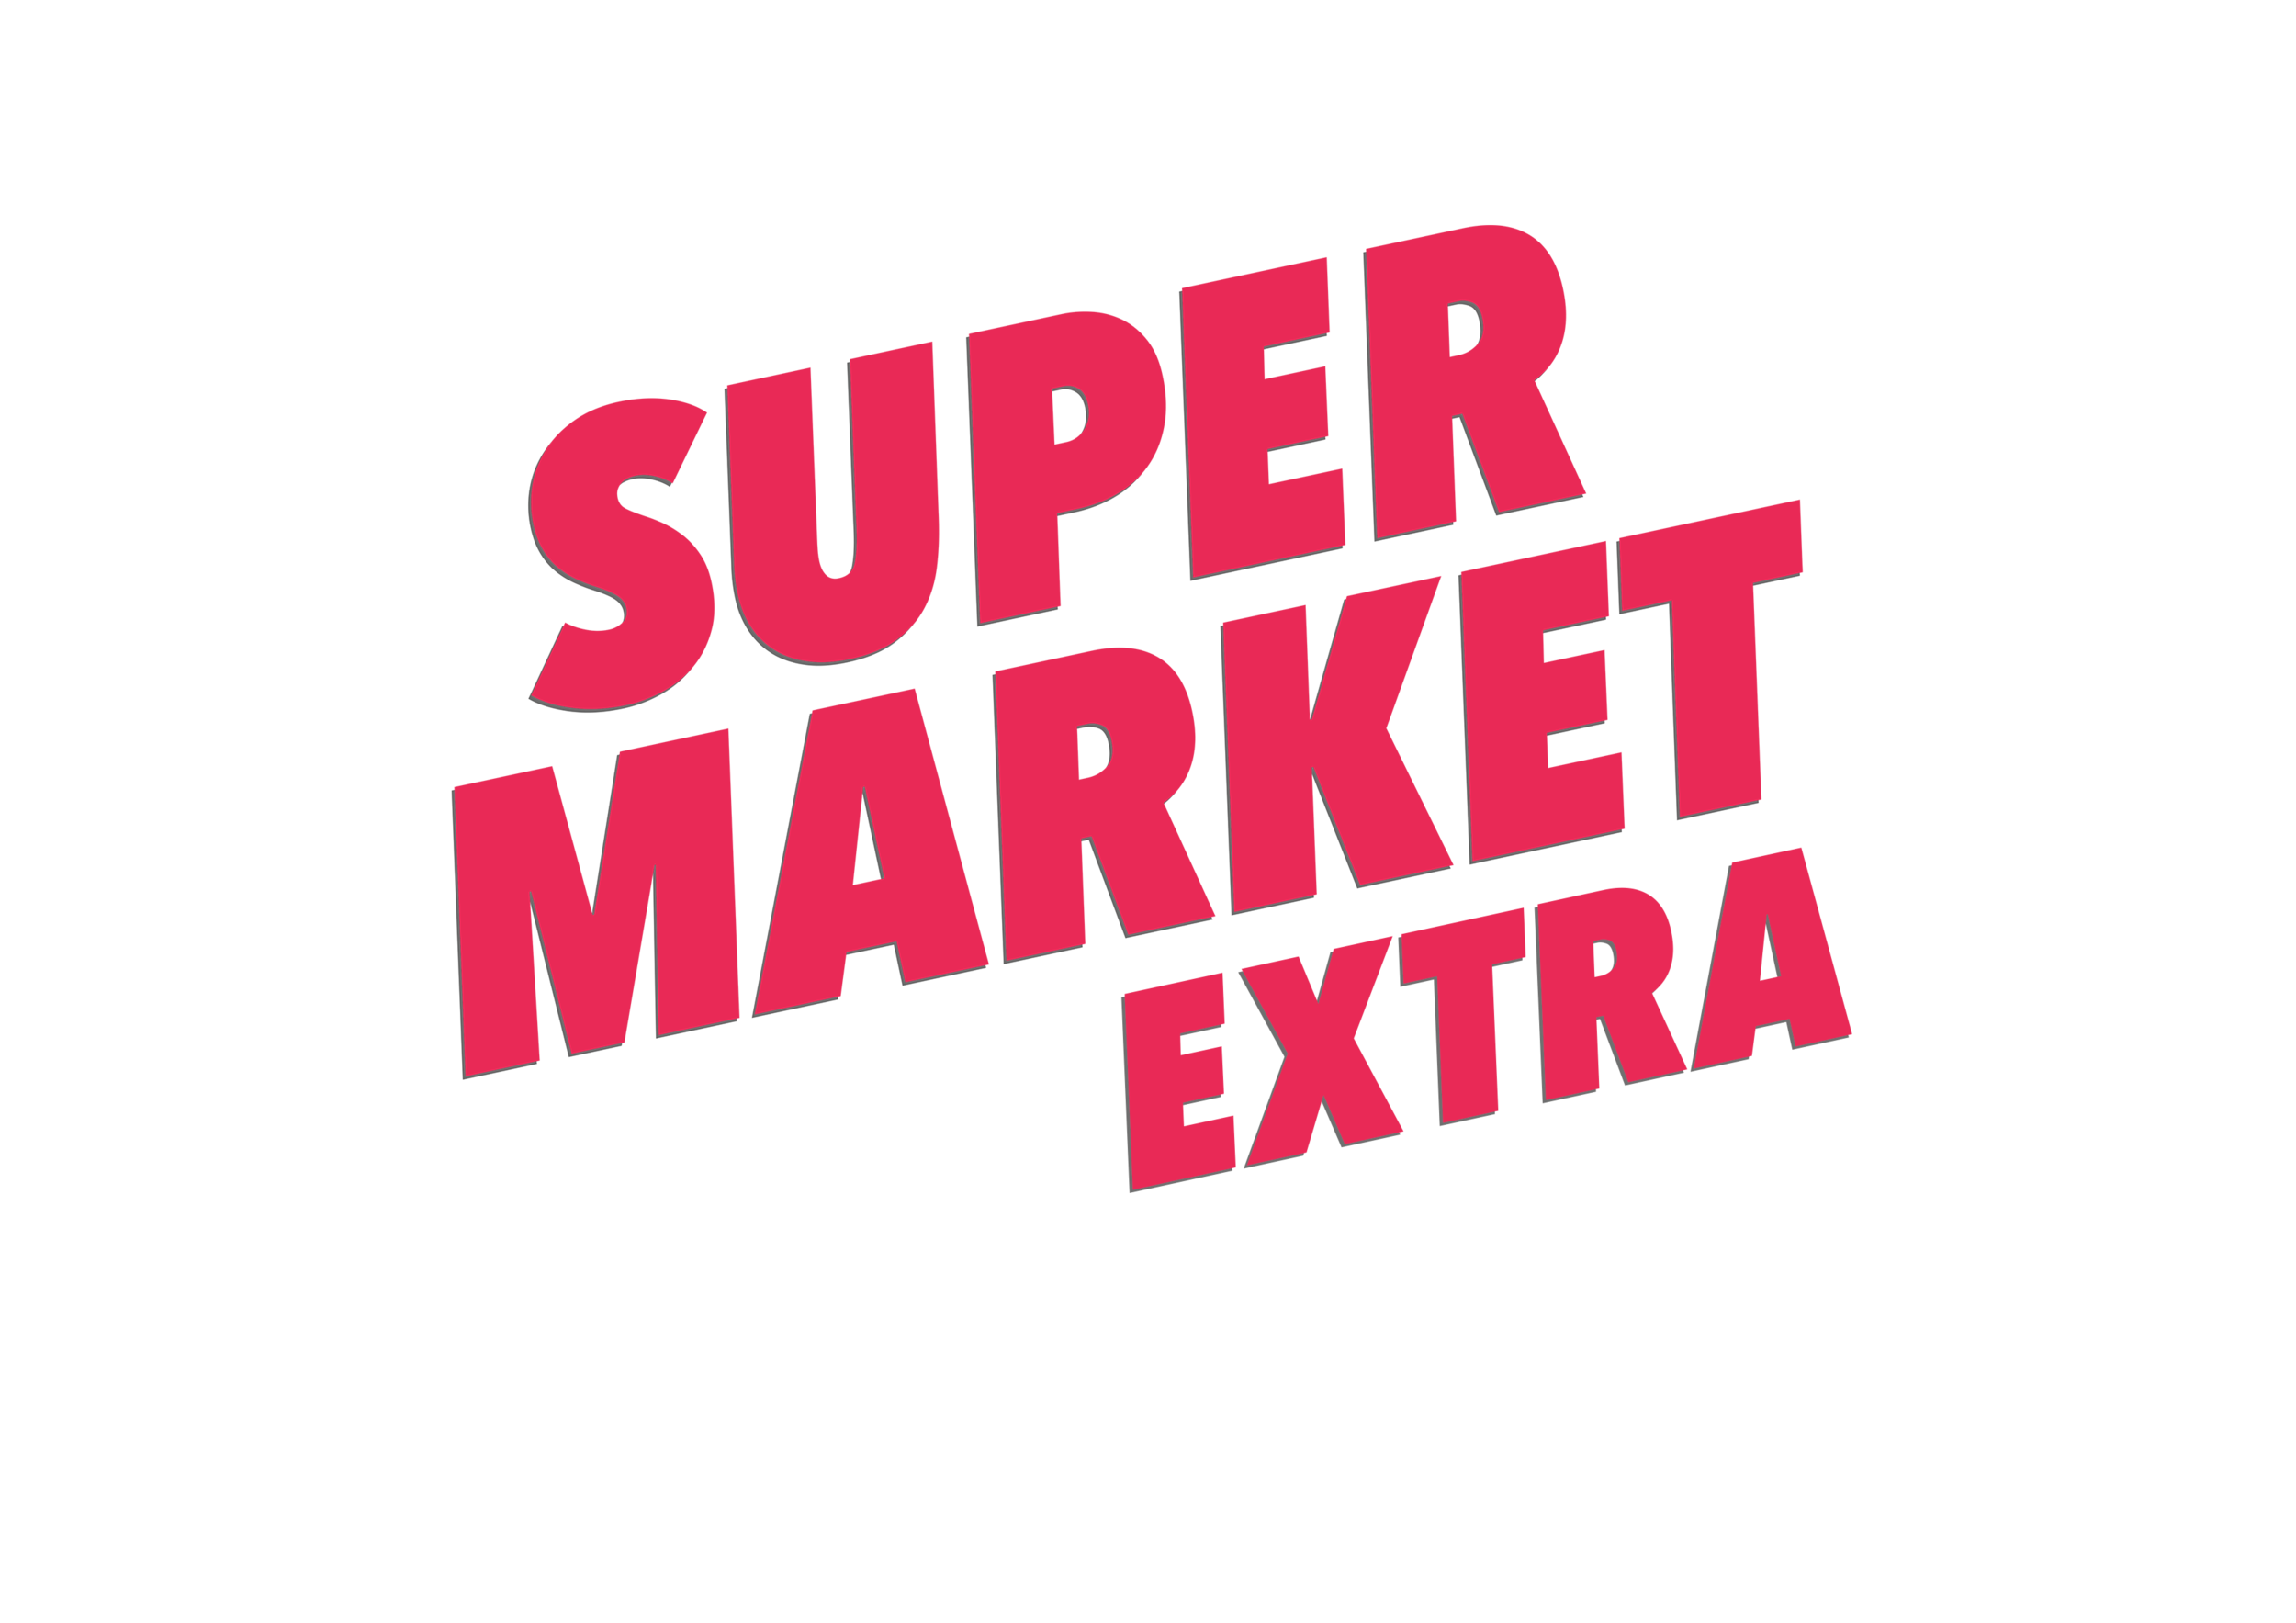 Supermarket Extra - Glasgow's popular Super Market is joining us for the festive period. Expect a selection of independent designers in fashion, art, ceramics, streetwear, jewellery, food products and a small selection of vintage items.